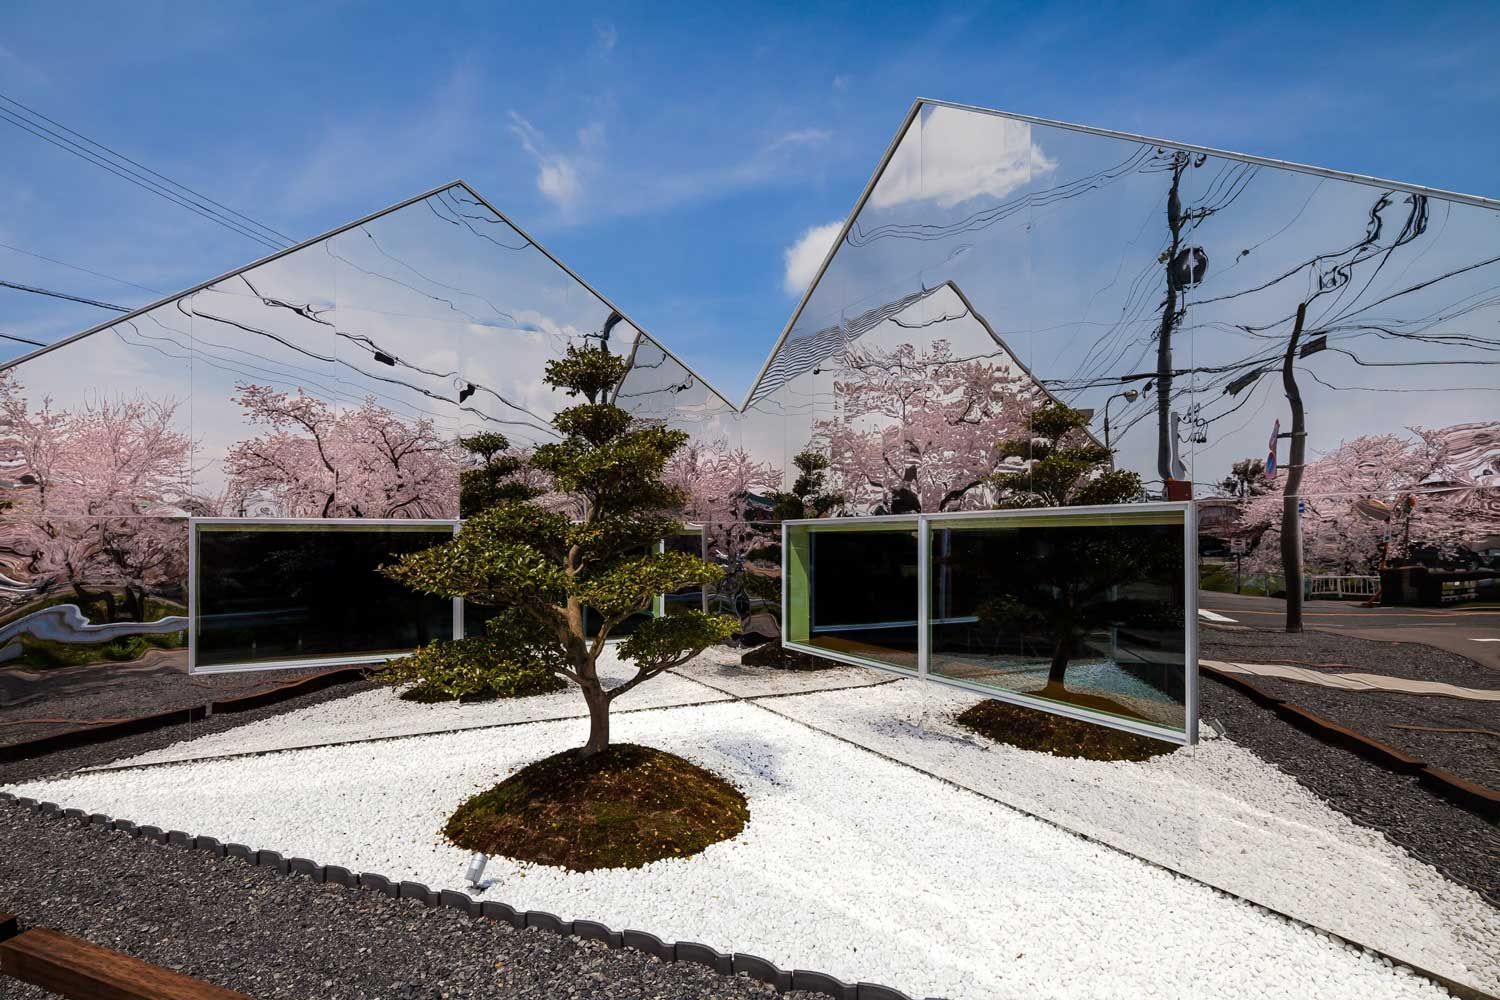 Mirrors Cafe in Gifu, Japan by Bandesign | Yellowtrace